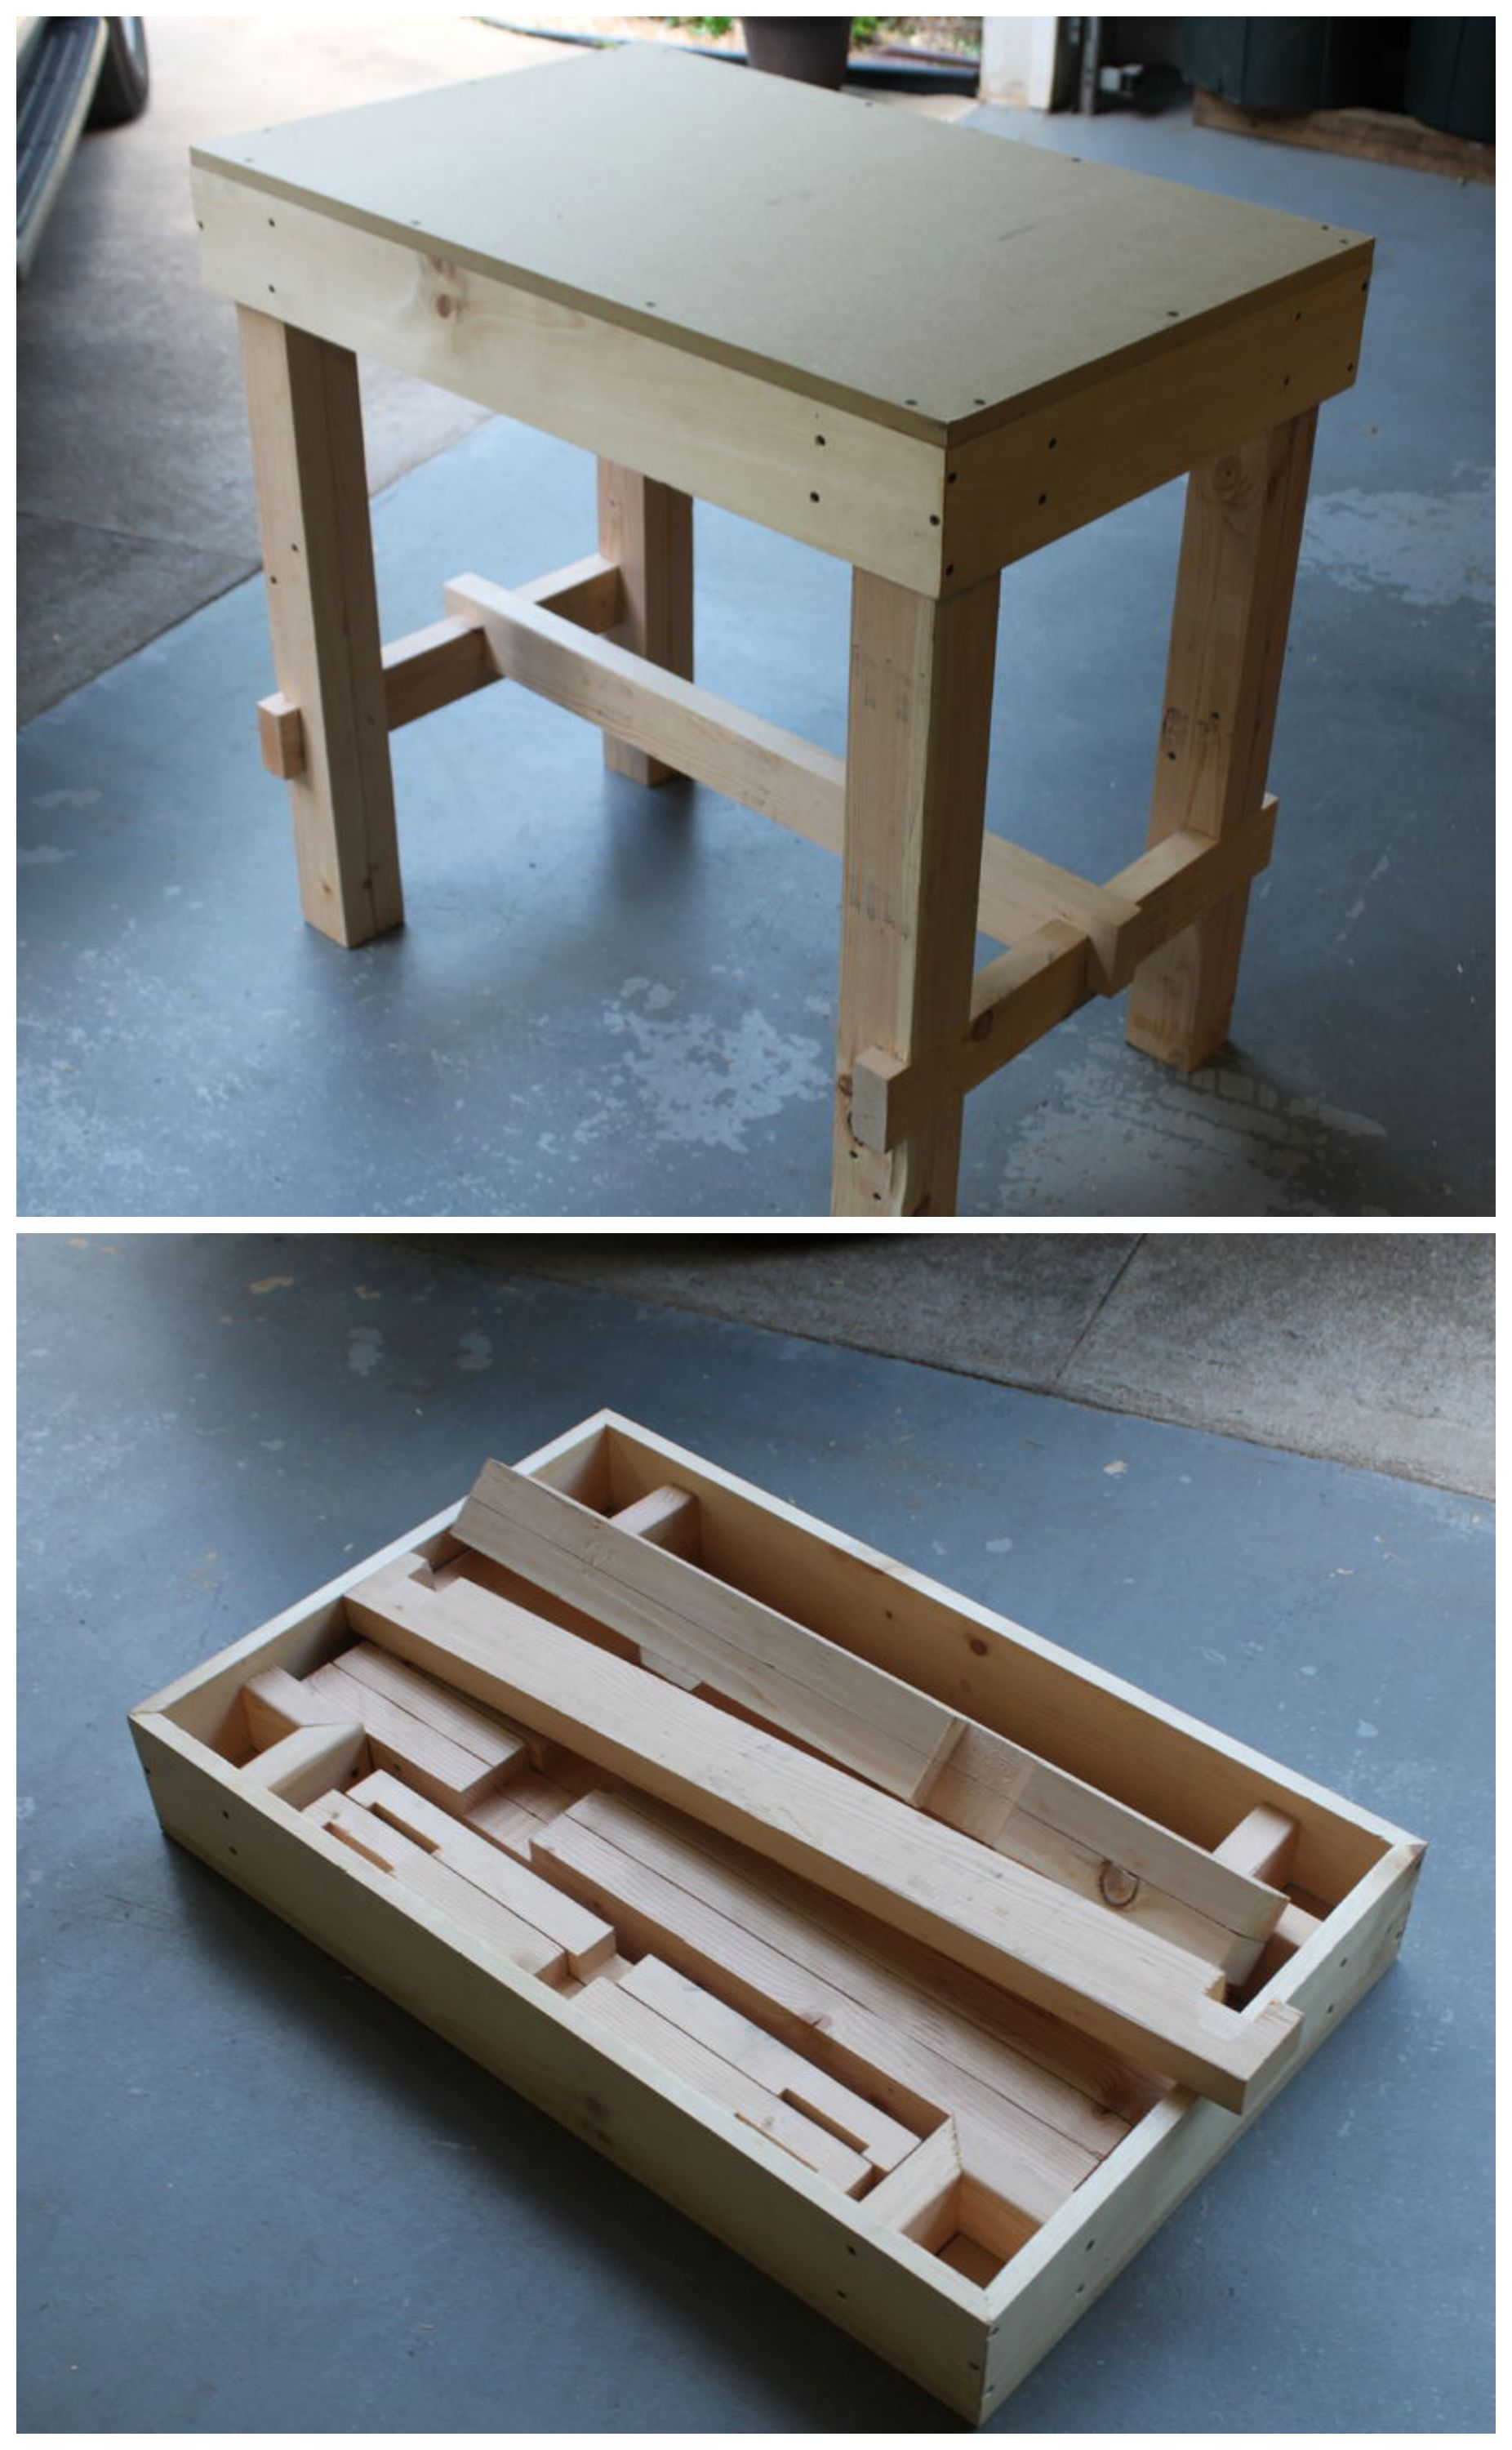 Collapsible Workbench | Woodwork ideas | Pinterest | Woodworking ...